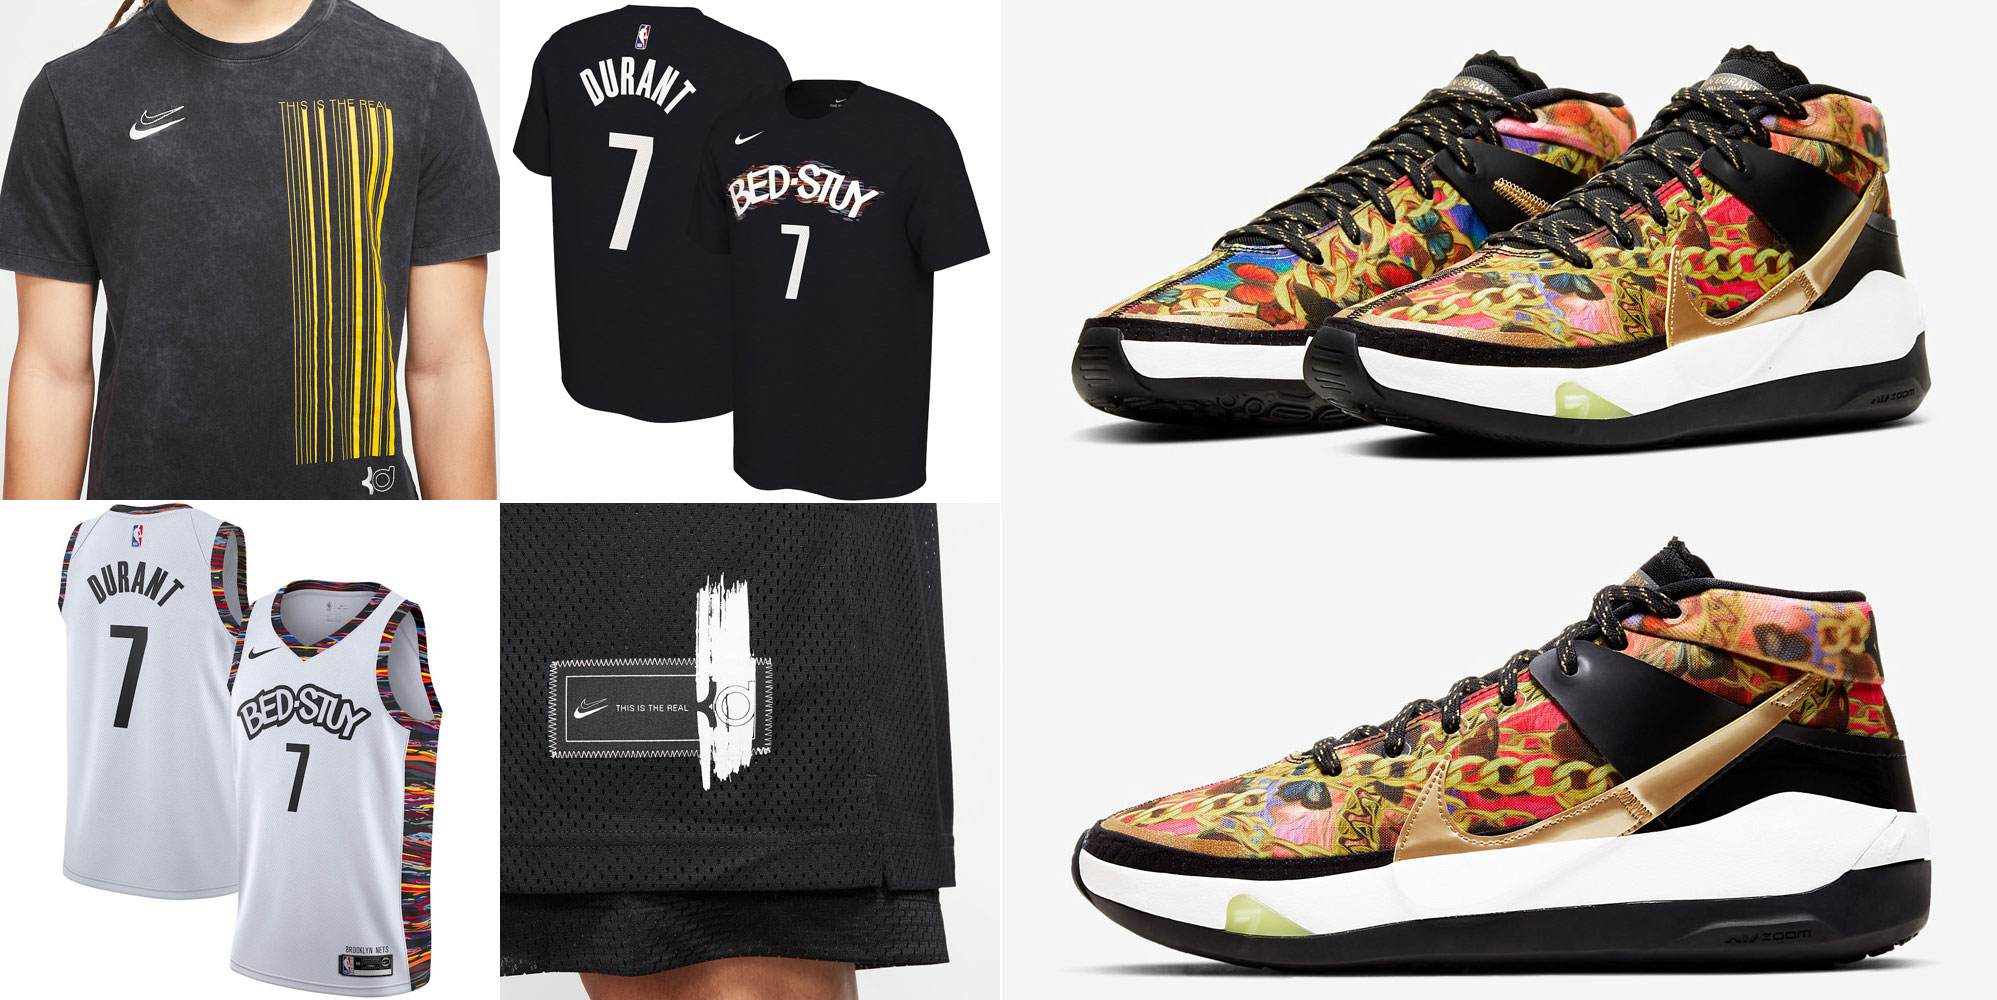 nike-kd-13-hype-sneaker-outfits